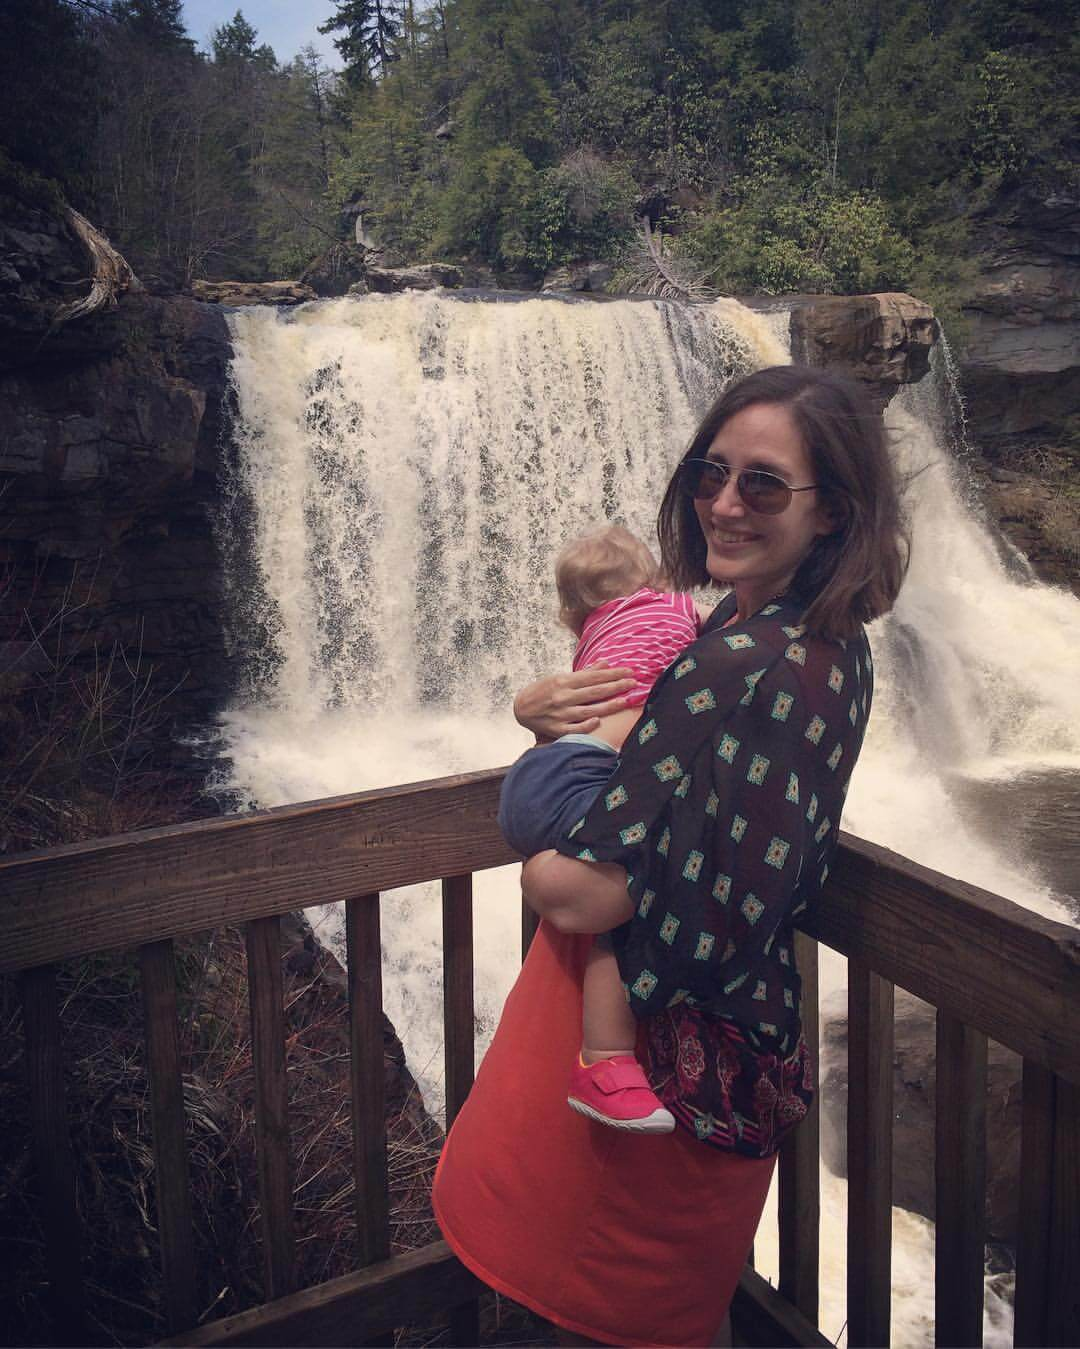 Holding my daughter at Blackwater Falls overlook